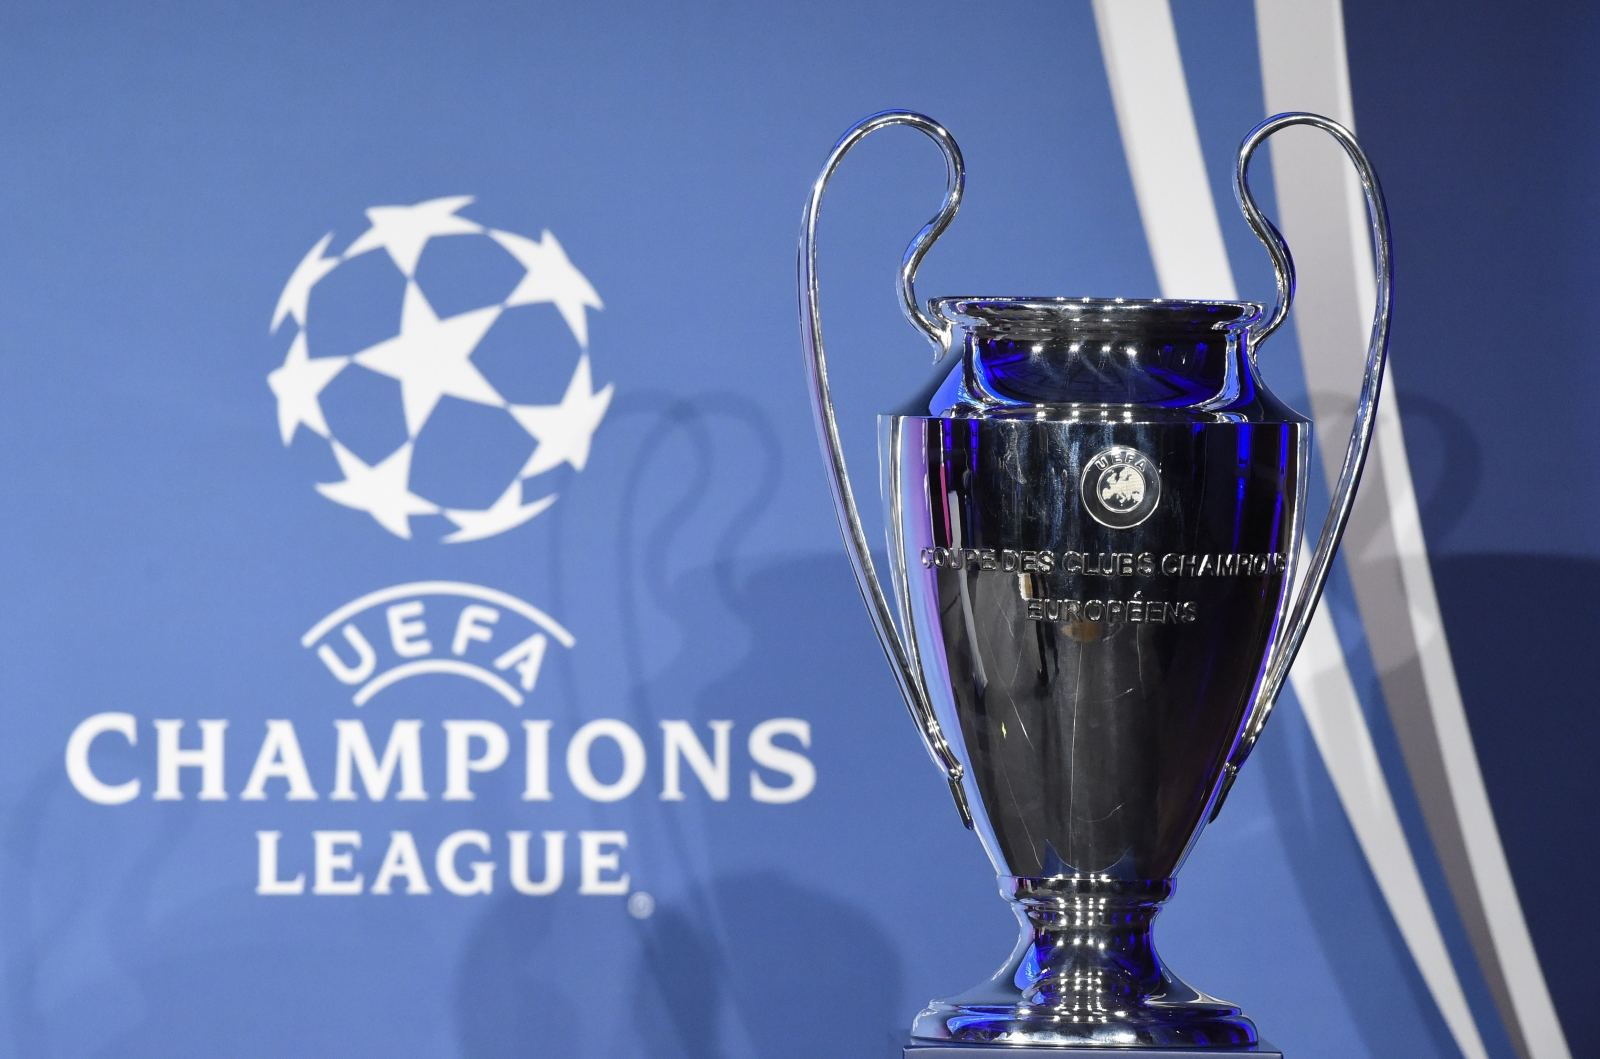 champions league - photo #45